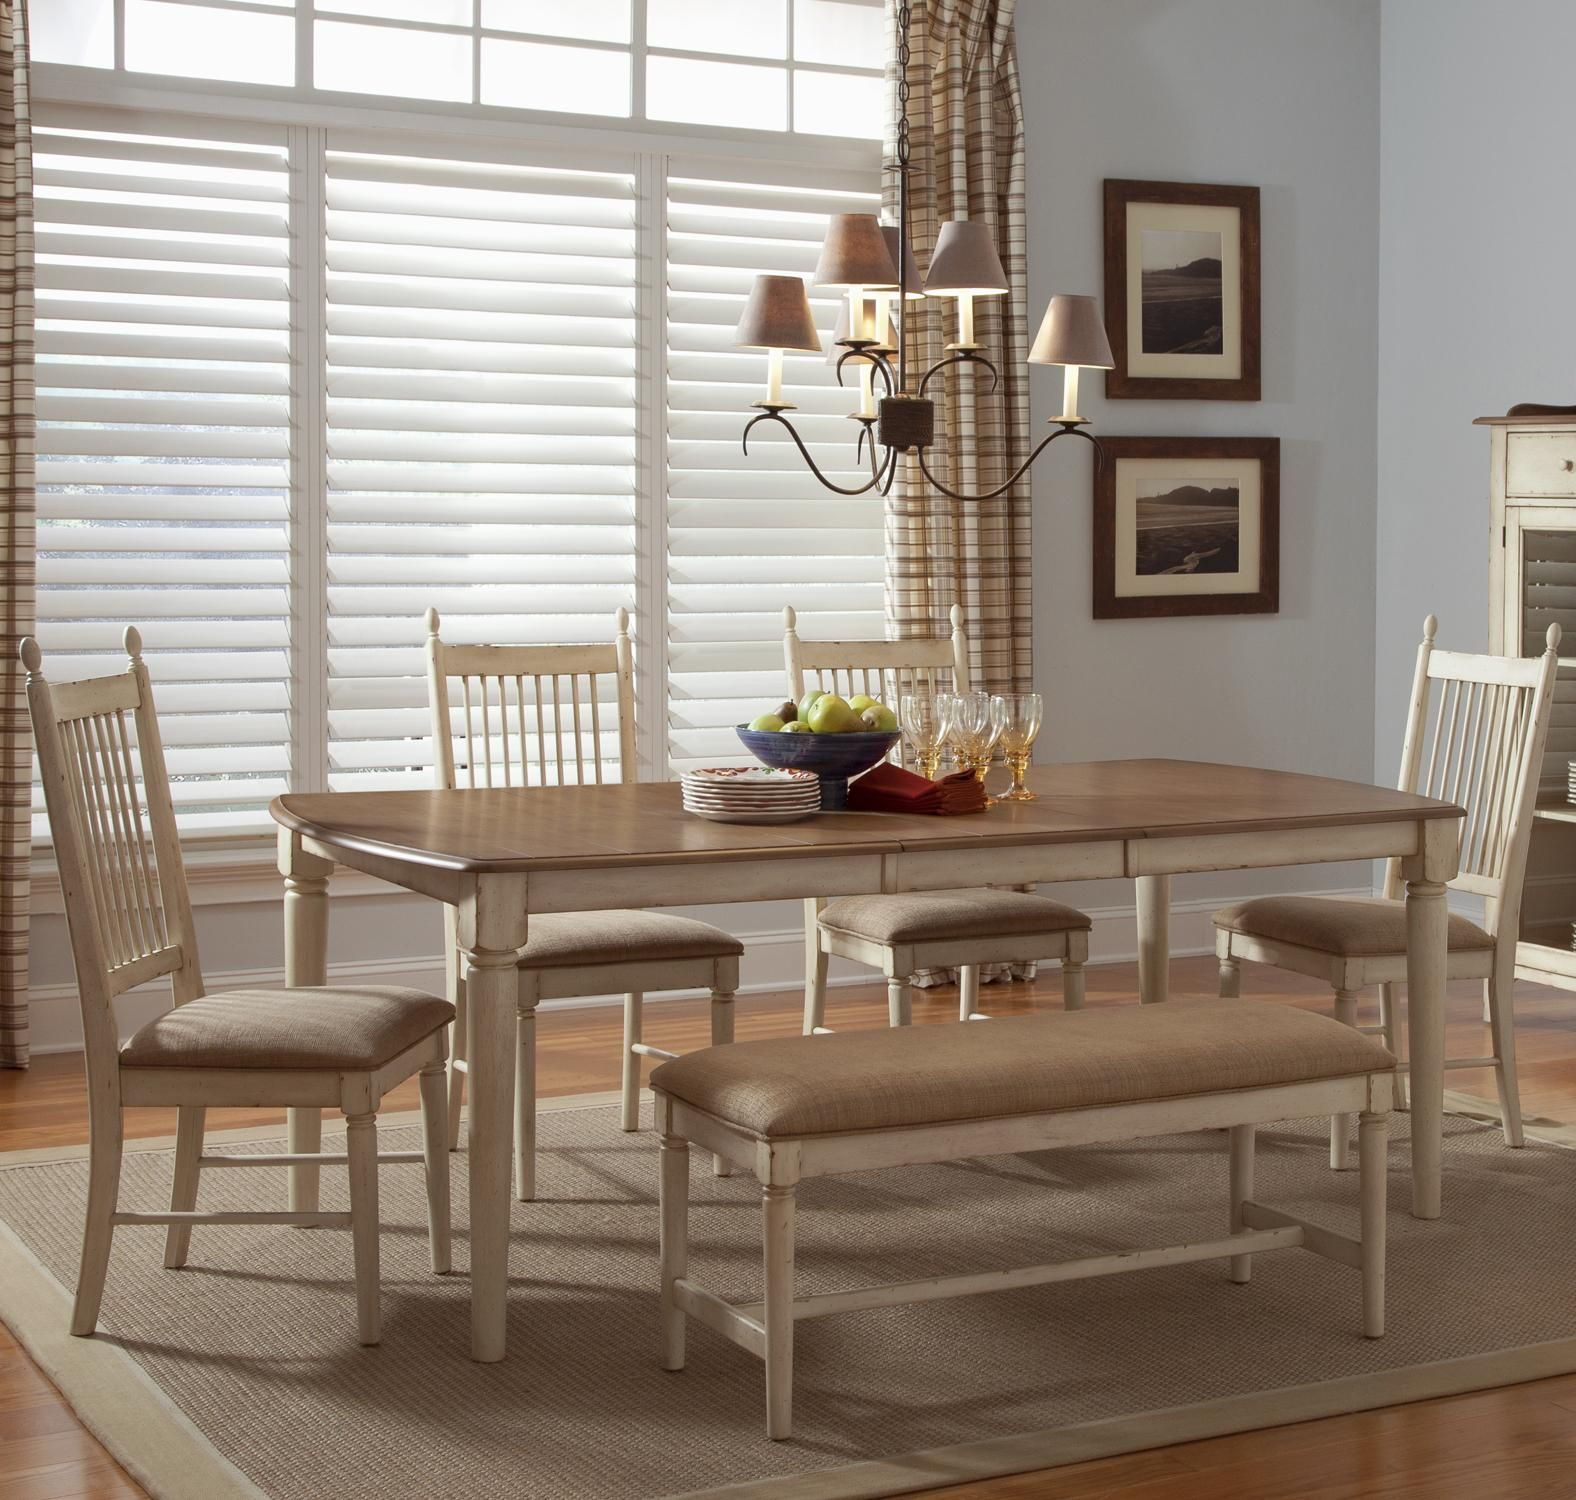 Cottage Dining Room Sets: Cottage Cove 6-Piece Dining Set By Liberty Furniture